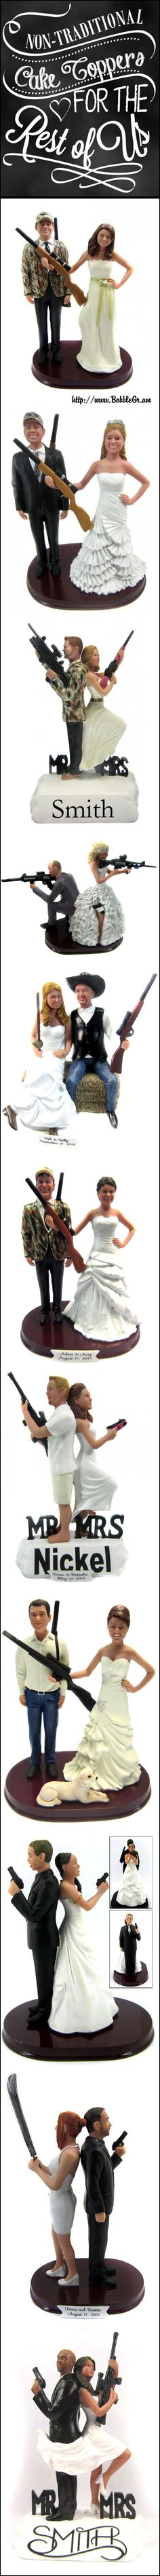 Let BobbleGr.am create a one-of-a-kind hunting themed cake topper complete with your choice of camouflage pattern - sculpted to look like the bride and groom!  Our toppers feature realistic looking rifles, shot guns, AR-14, tactical pistols and other weapons.  Perfect for shooting enthusiasts, sports fans and military personnel.  Our toppers are custom sculpted based on your photos to look like the bride and groom.